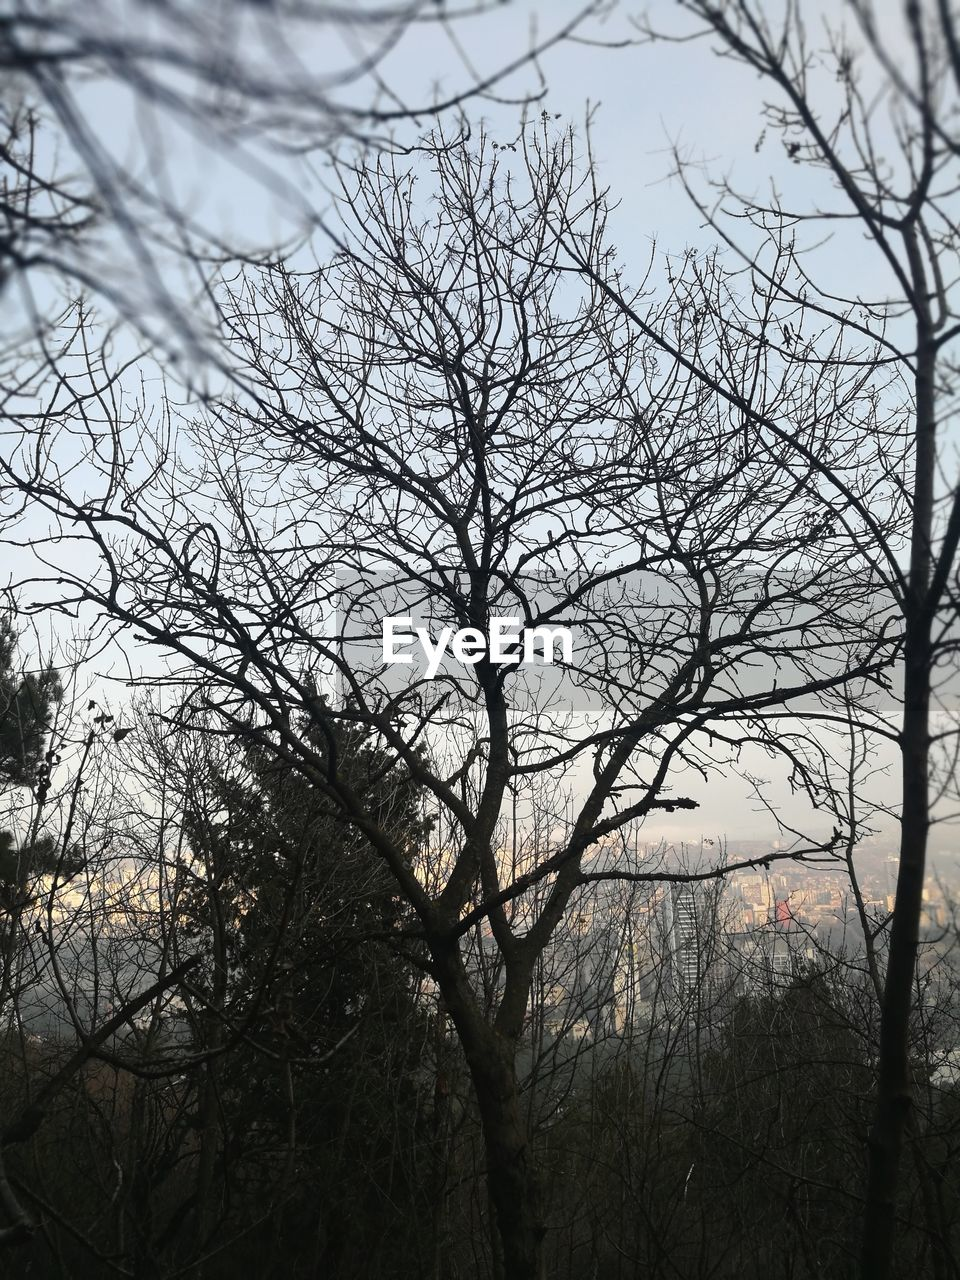 tree, bare tree, plant, branch, sky, no people, tranquility, nature, scenics - nature, outdoors, low angle view, beauty in nature, silhouette, tree trunk, trunk, non-urban scene, day, growth, tranquil scene, land